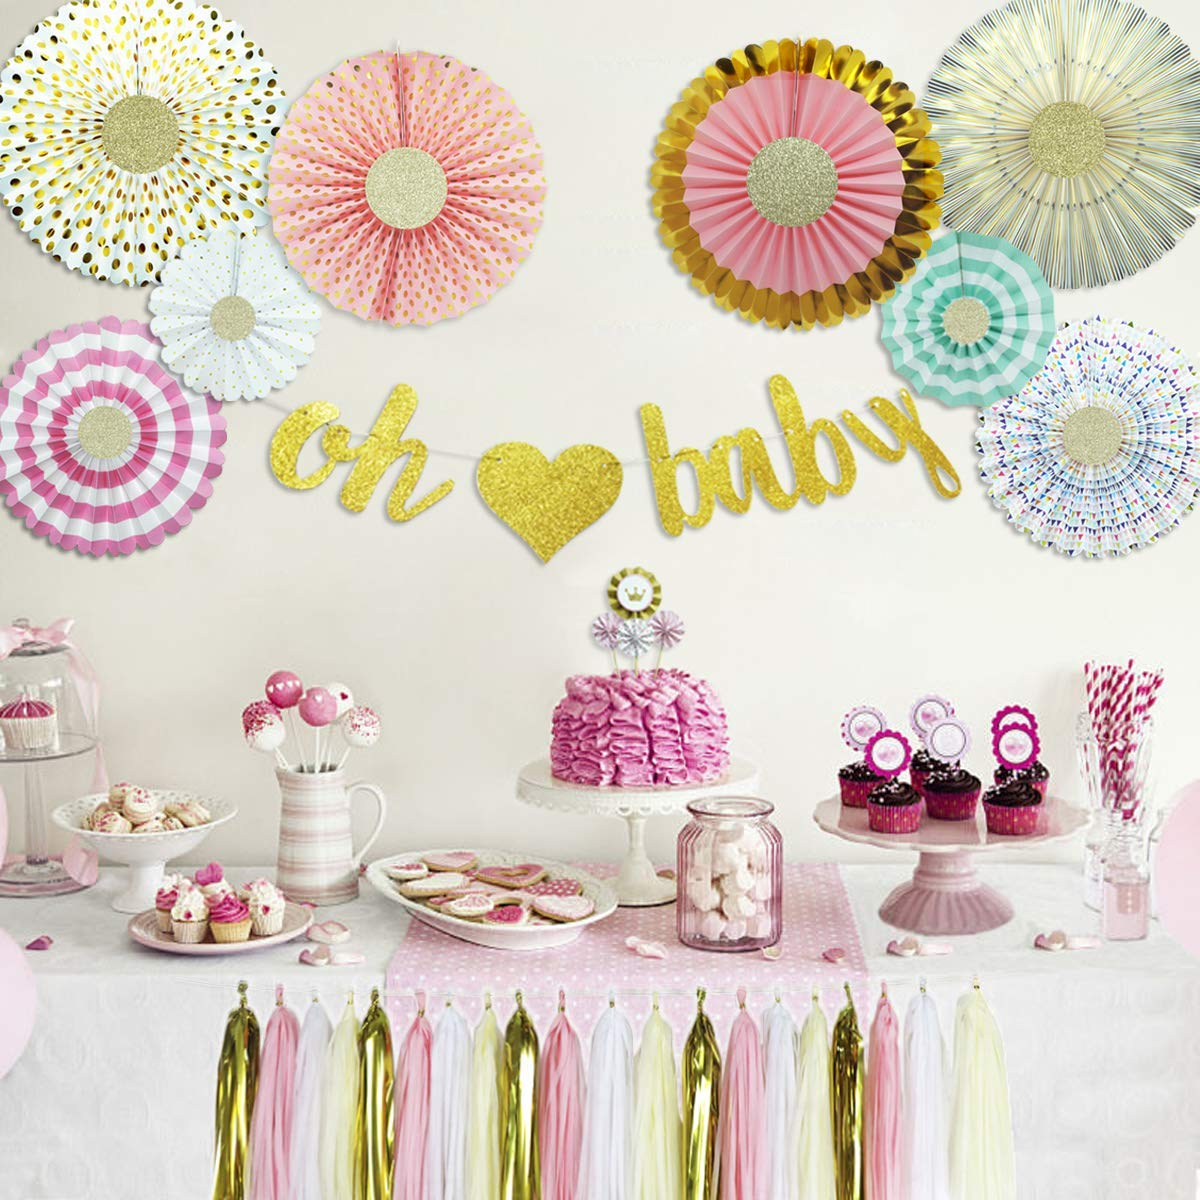 Amazon.com: Baby Shower Decorations for Girl with Oh Baby Banner Paper Fans  Princess Cake Topper and Tassels Kit Party Supplies (Pink Gold Cream 37  Pieces): ...